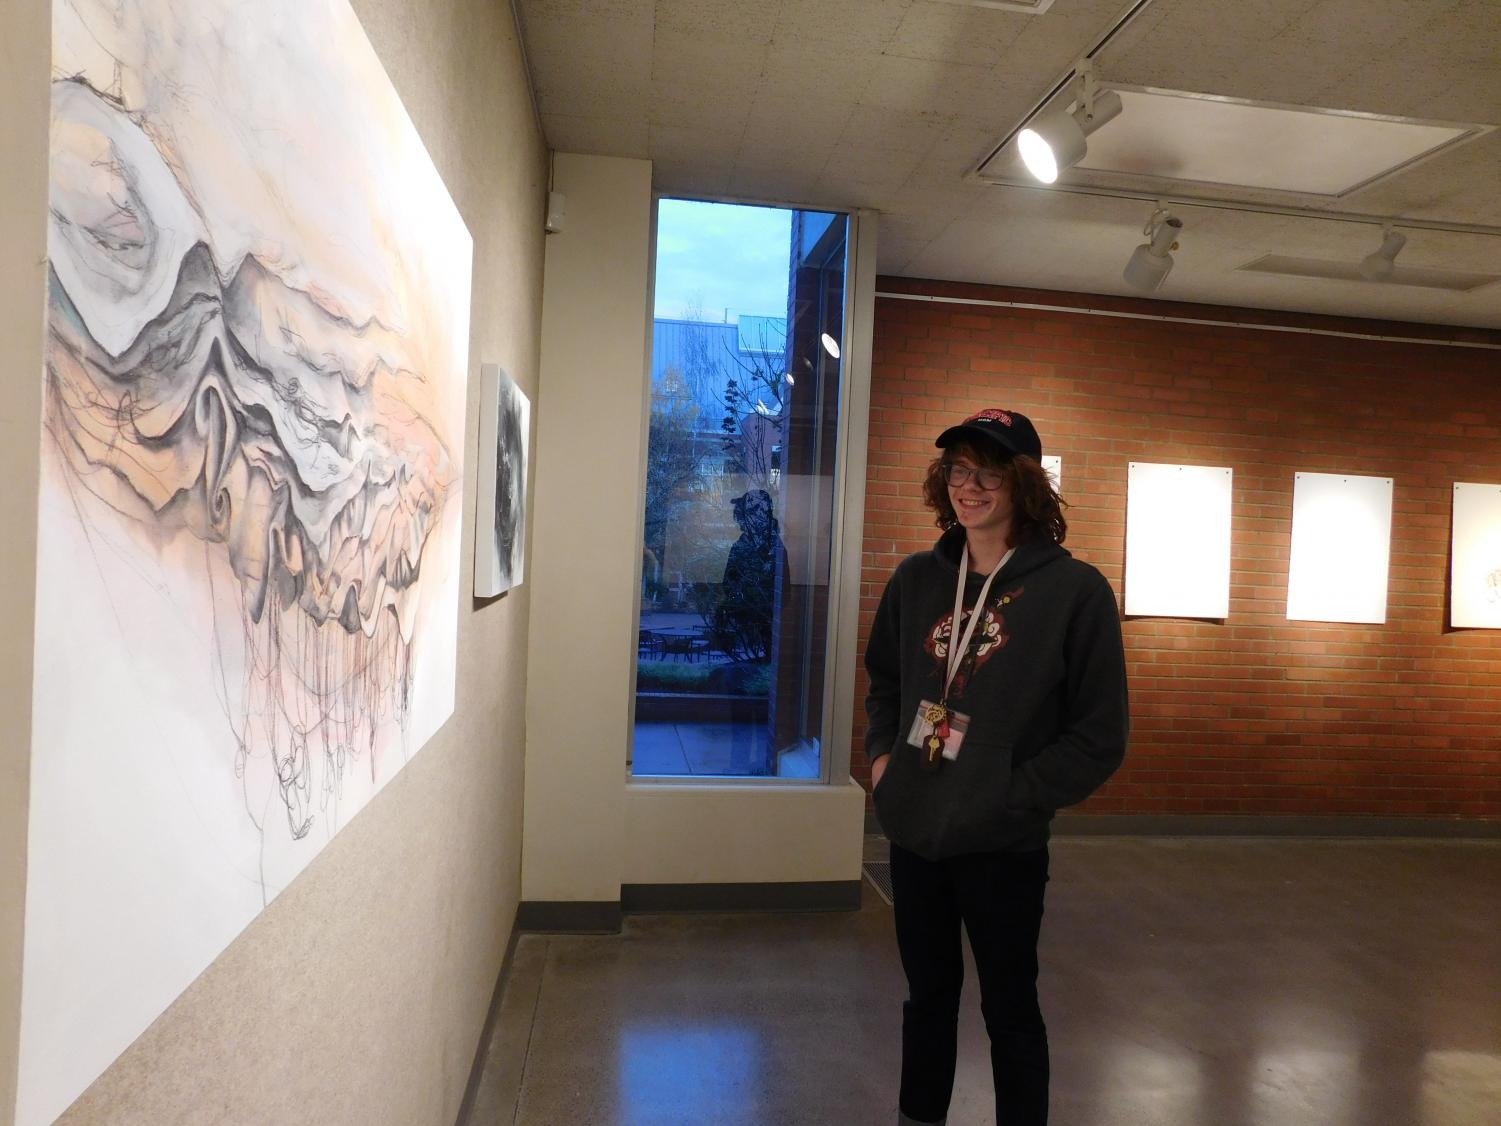 Student Seamus McCune observes Kate Lund's pieces from